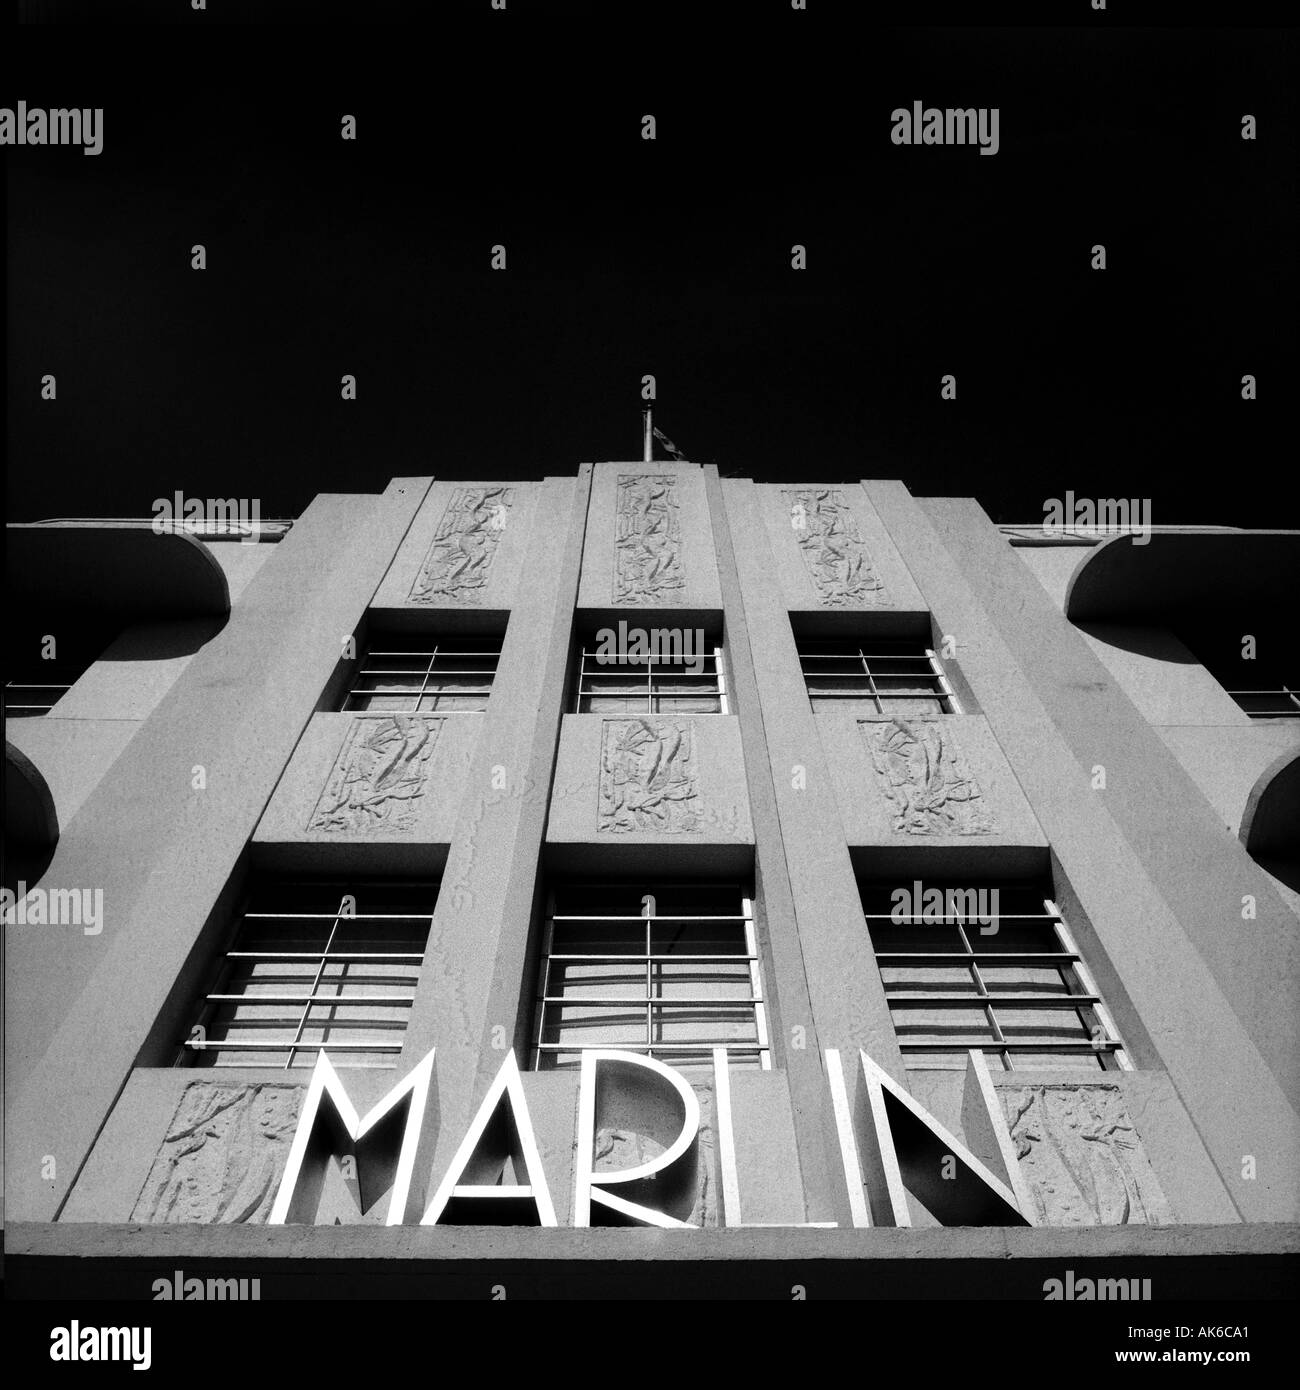 La facciata della Marlin hotel in Miami s South Beach Art Deco District Foto Stock